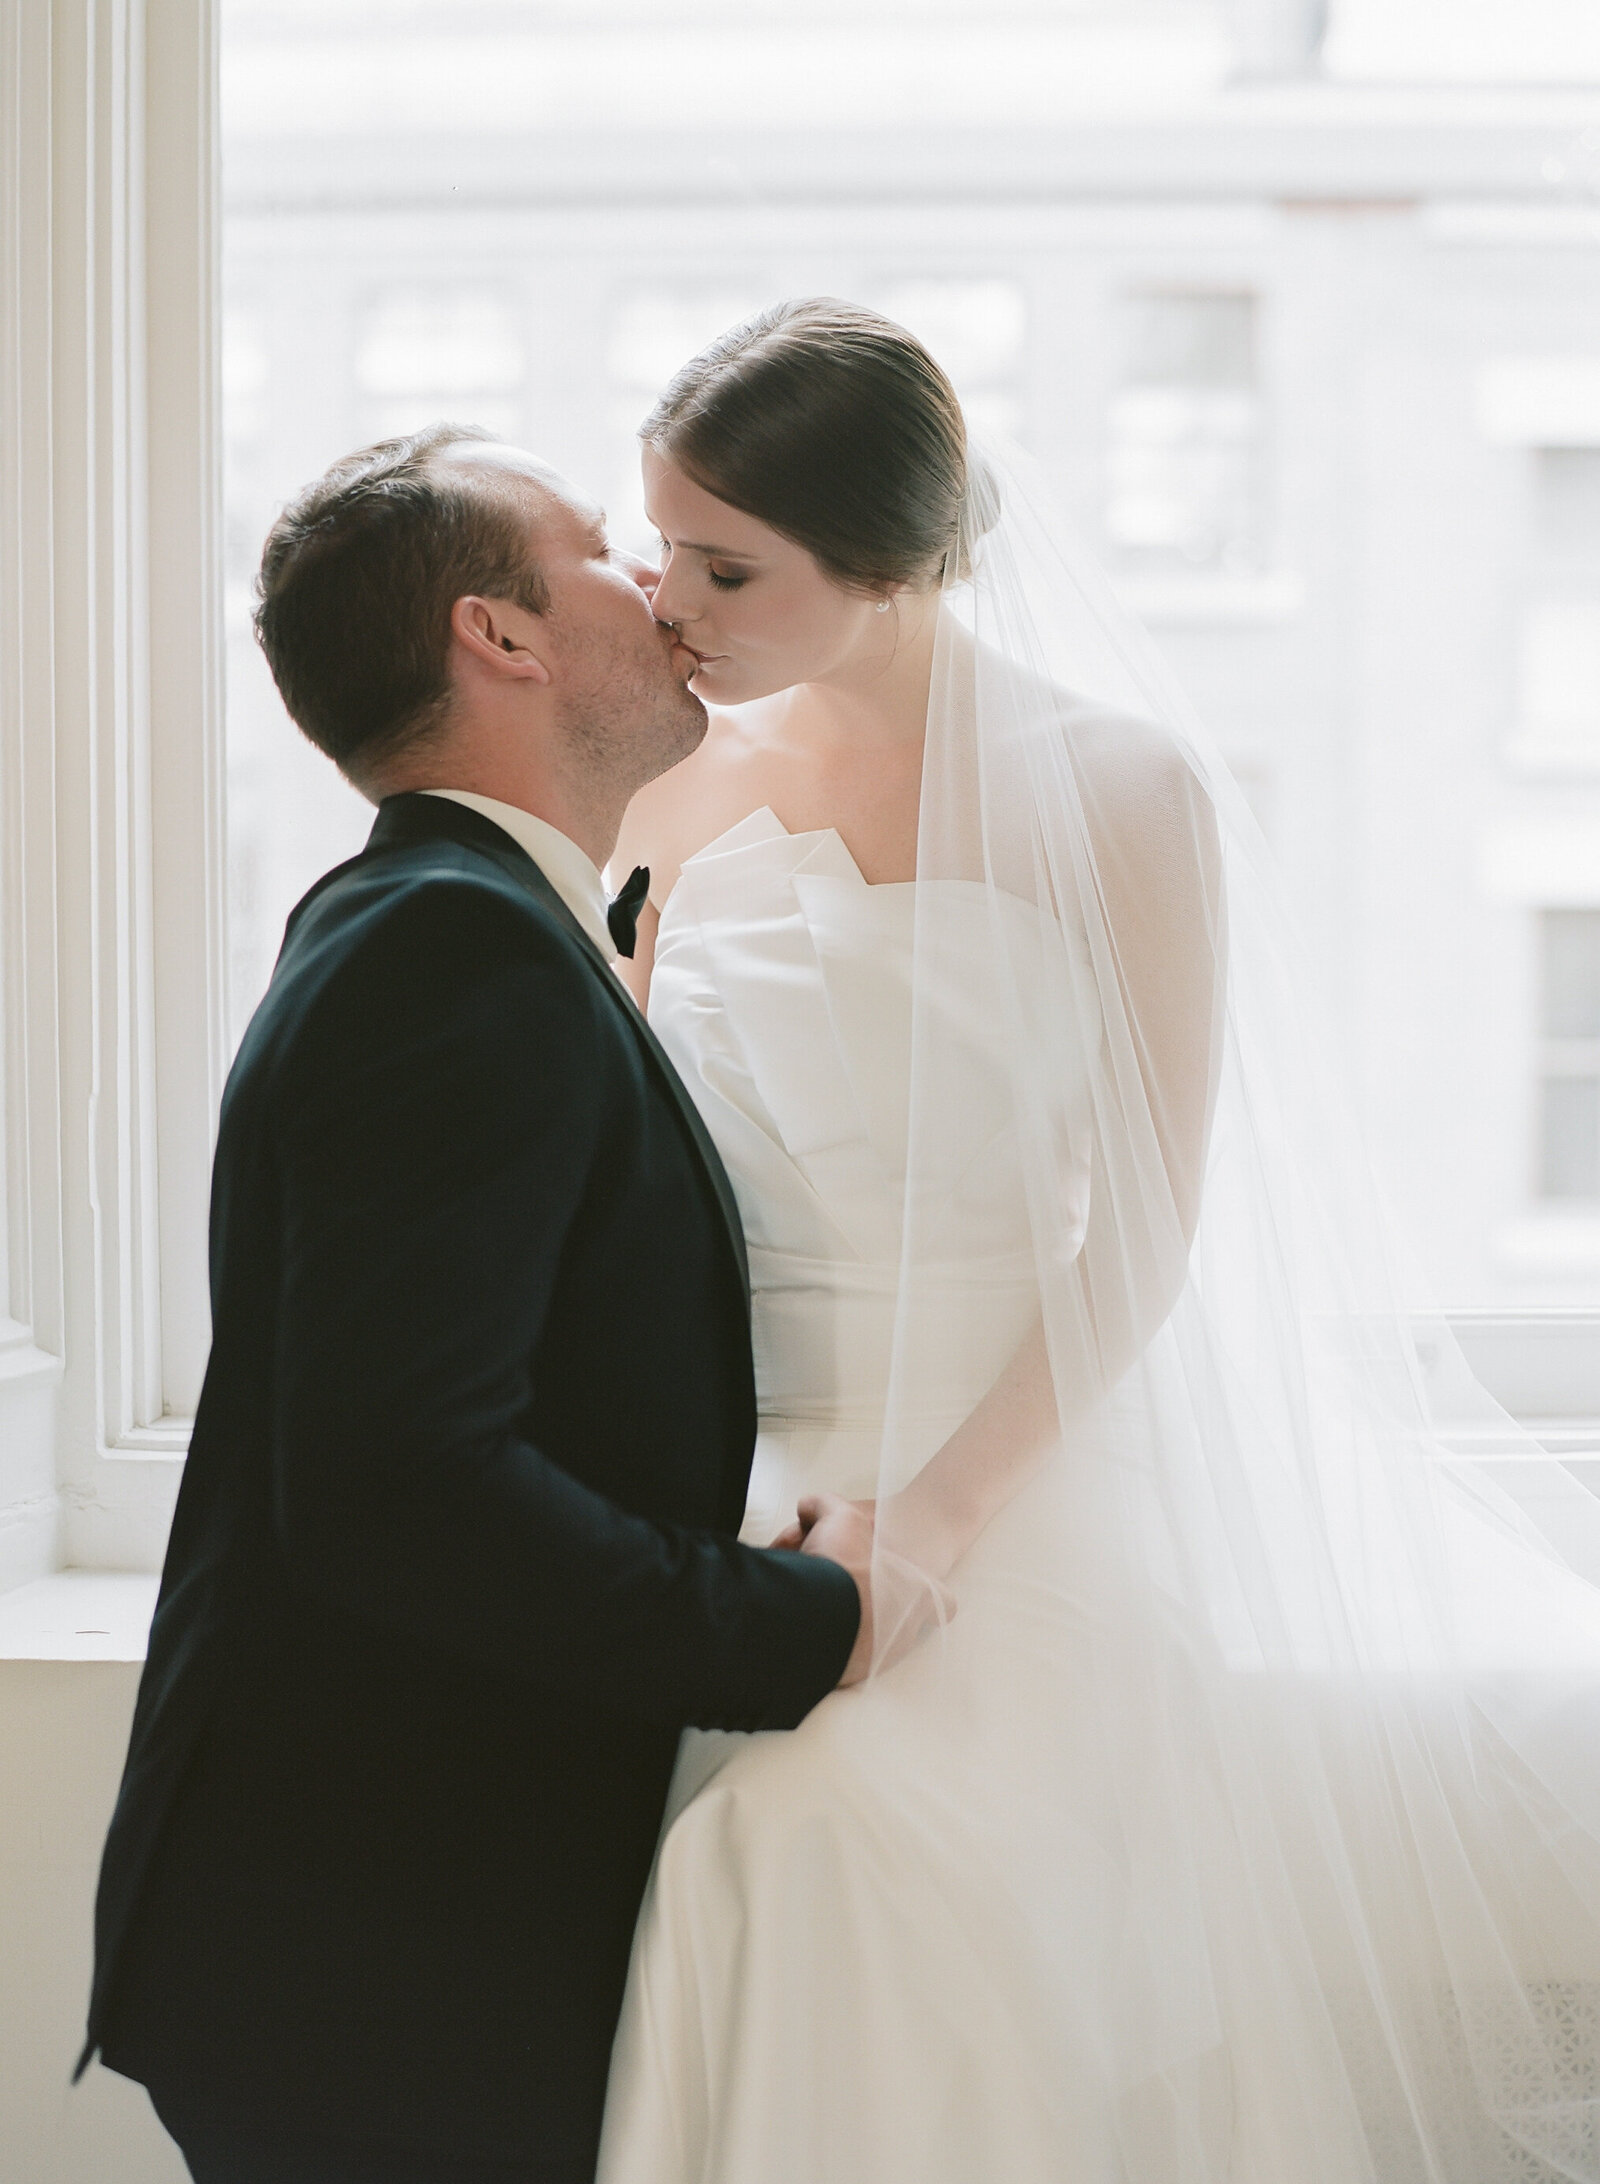 Jacqueline Anne Photography - Halifax Wedding Photographer - The Halifax Club 2020-100